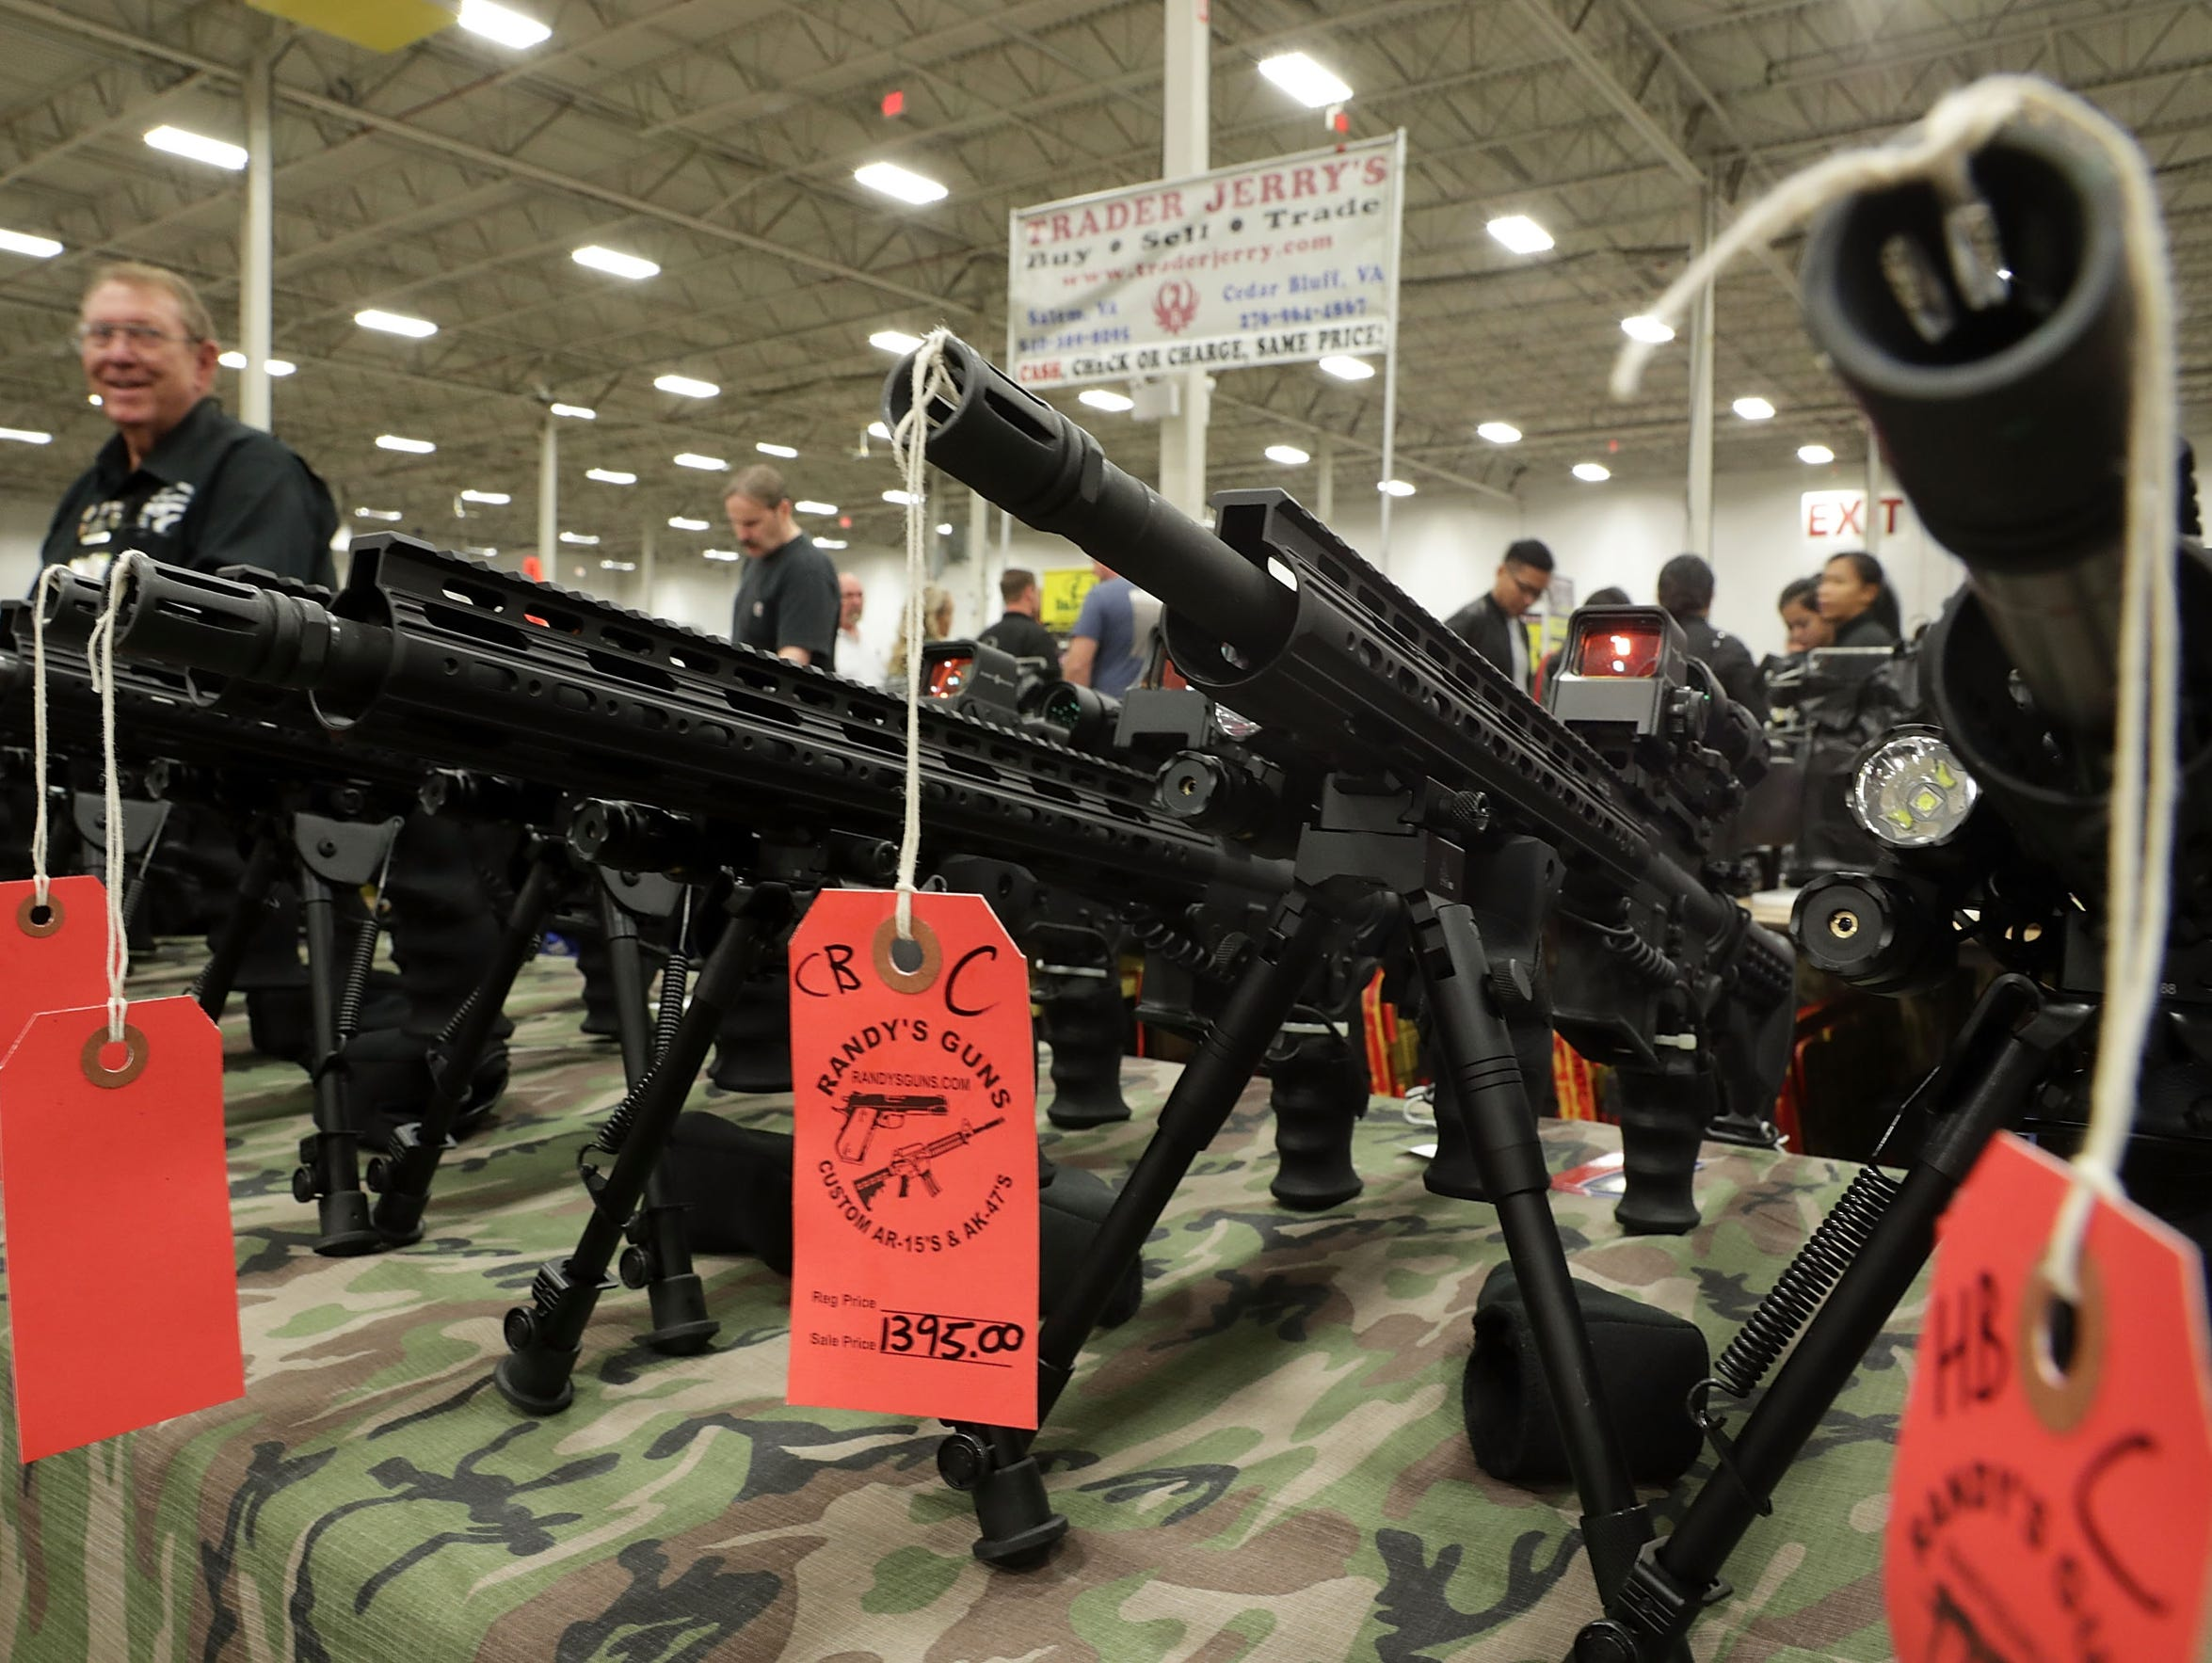 AR-15 rifles are on display during the Nation's Gun